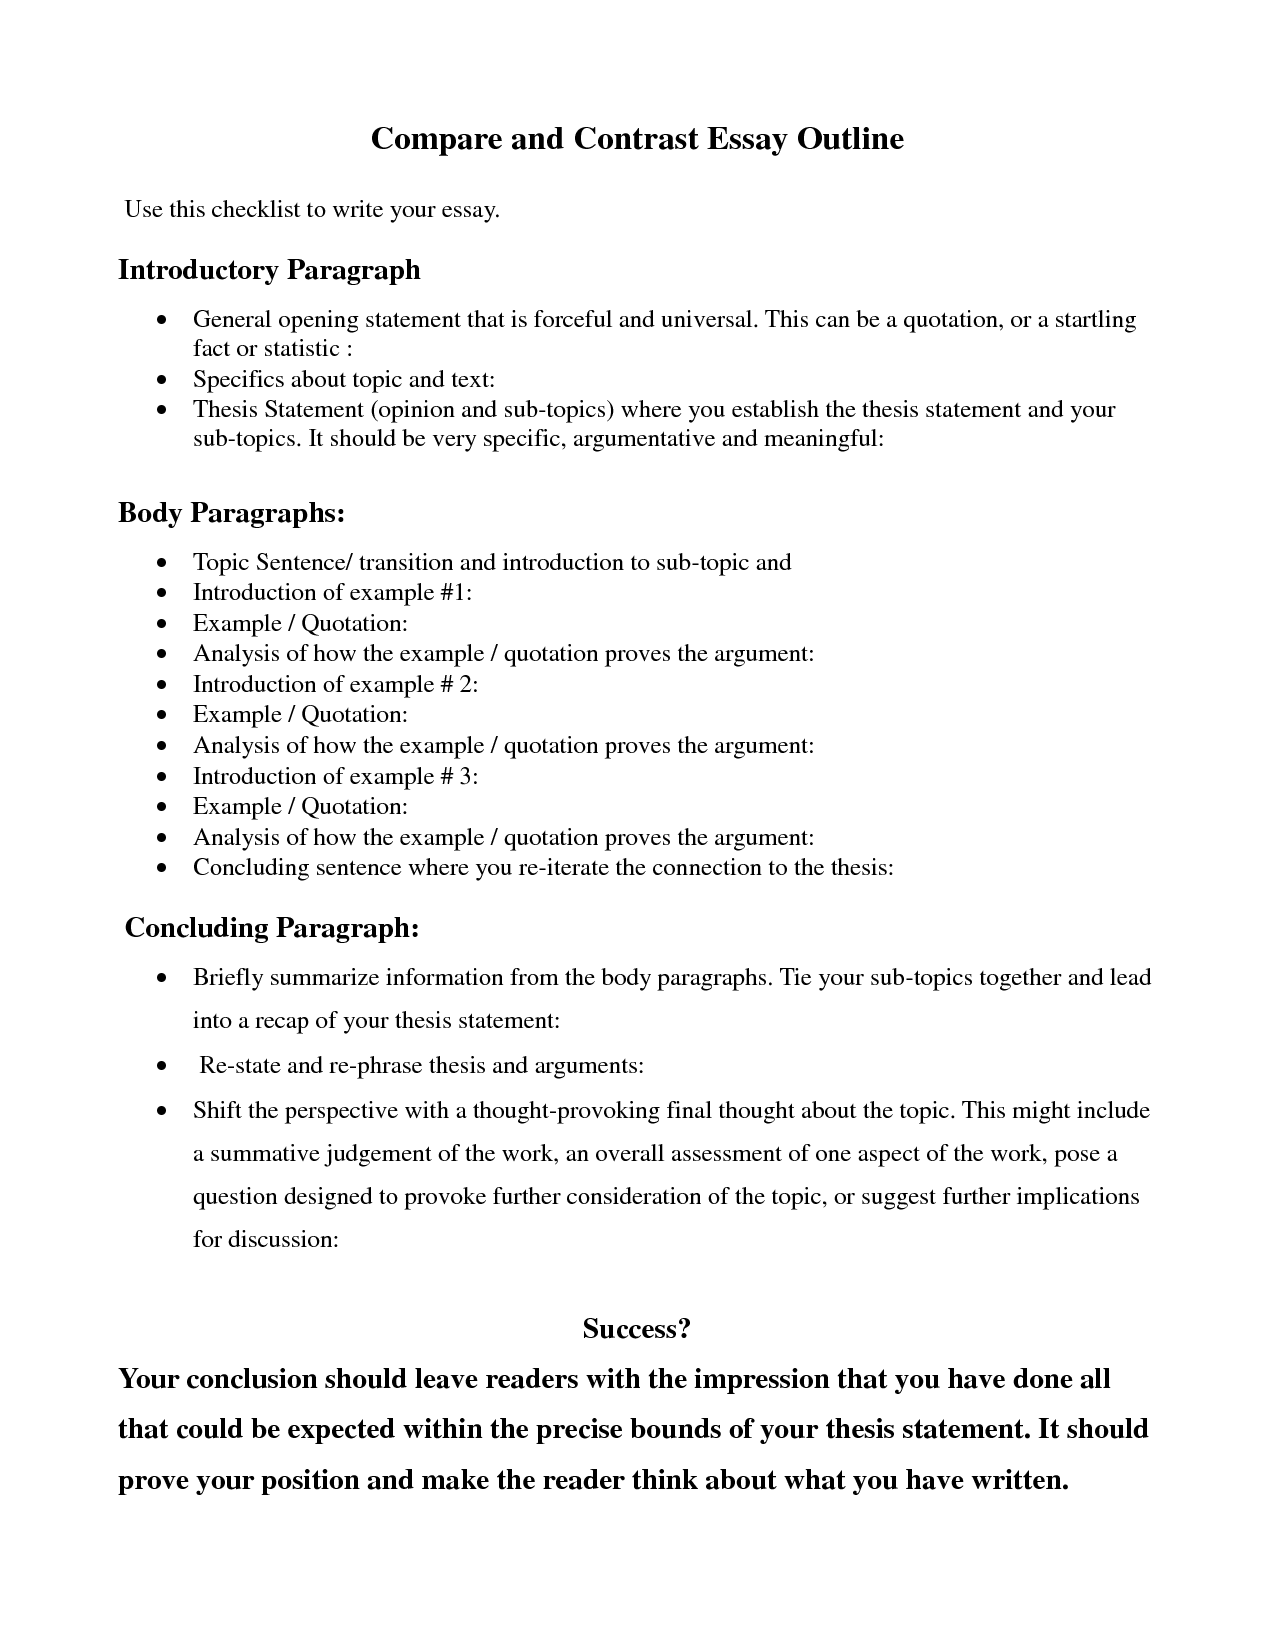 001 Compare And Contrast Essay Example Frightening Topics For College Students Rubric 4th Grade Ideas 7th Full